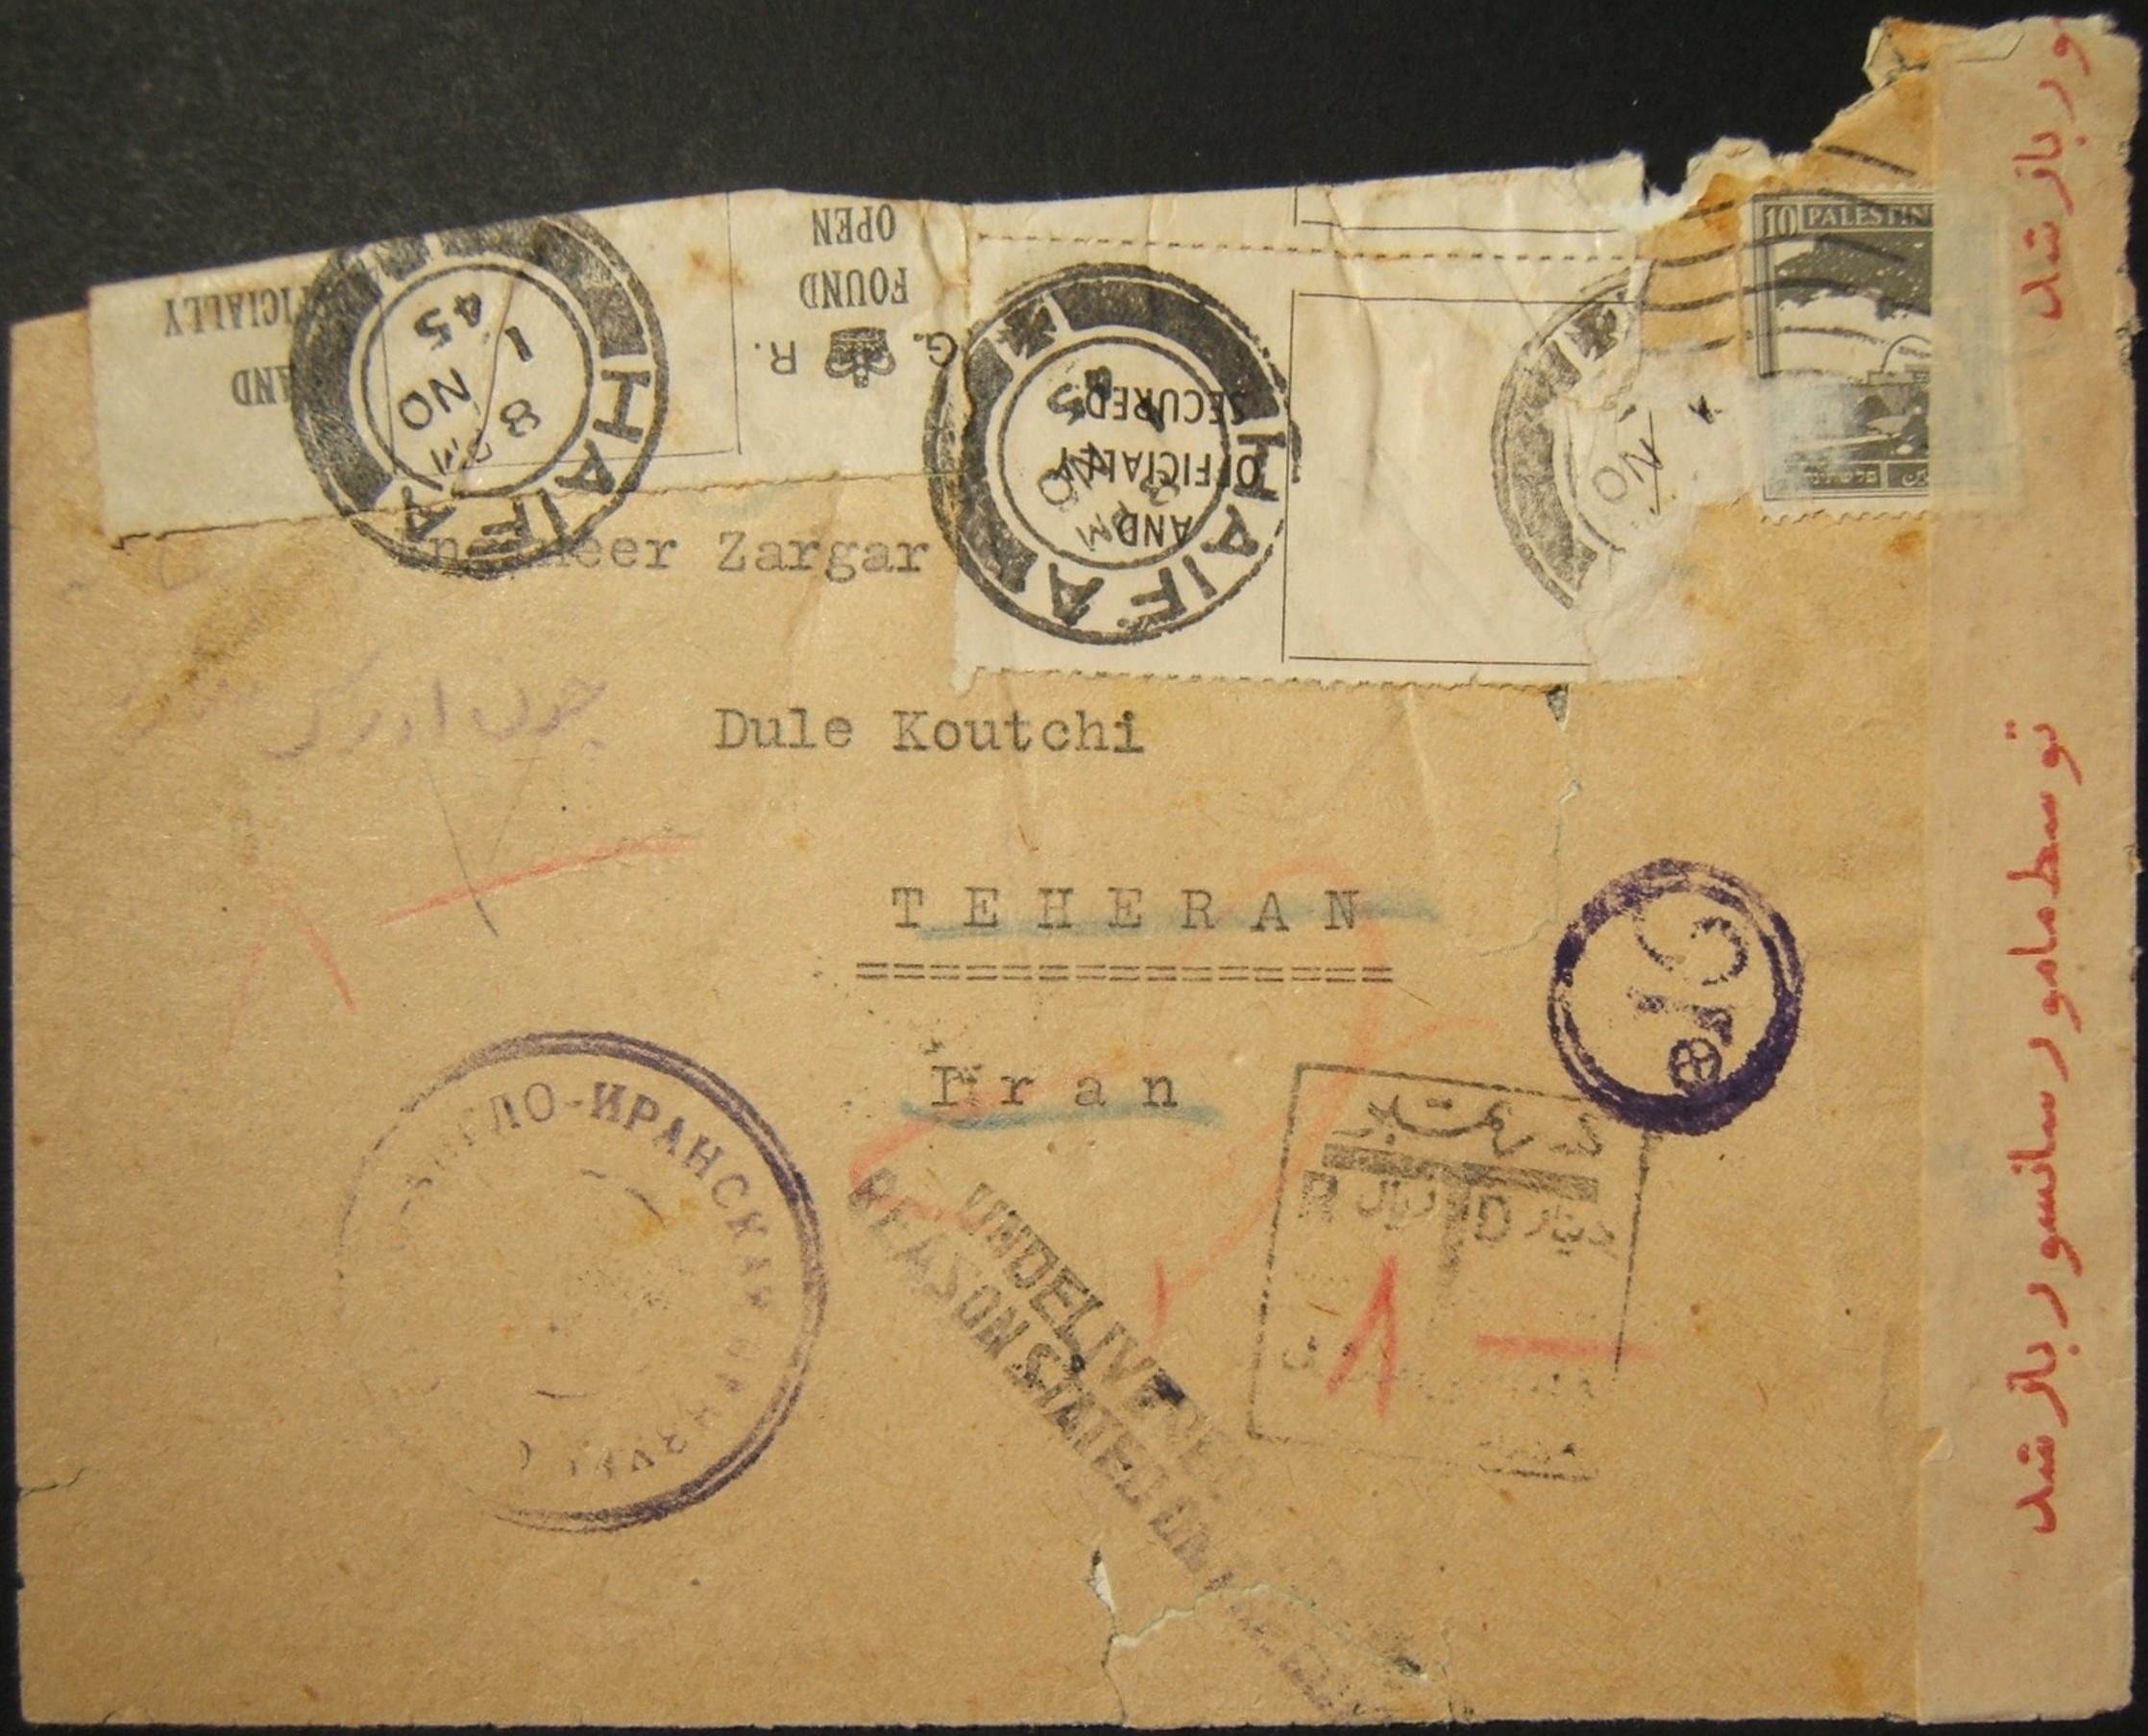 7/1945 taxed/censored/returned eastbound overland mail from HAIFA to TEHRAN via BAGHDAD